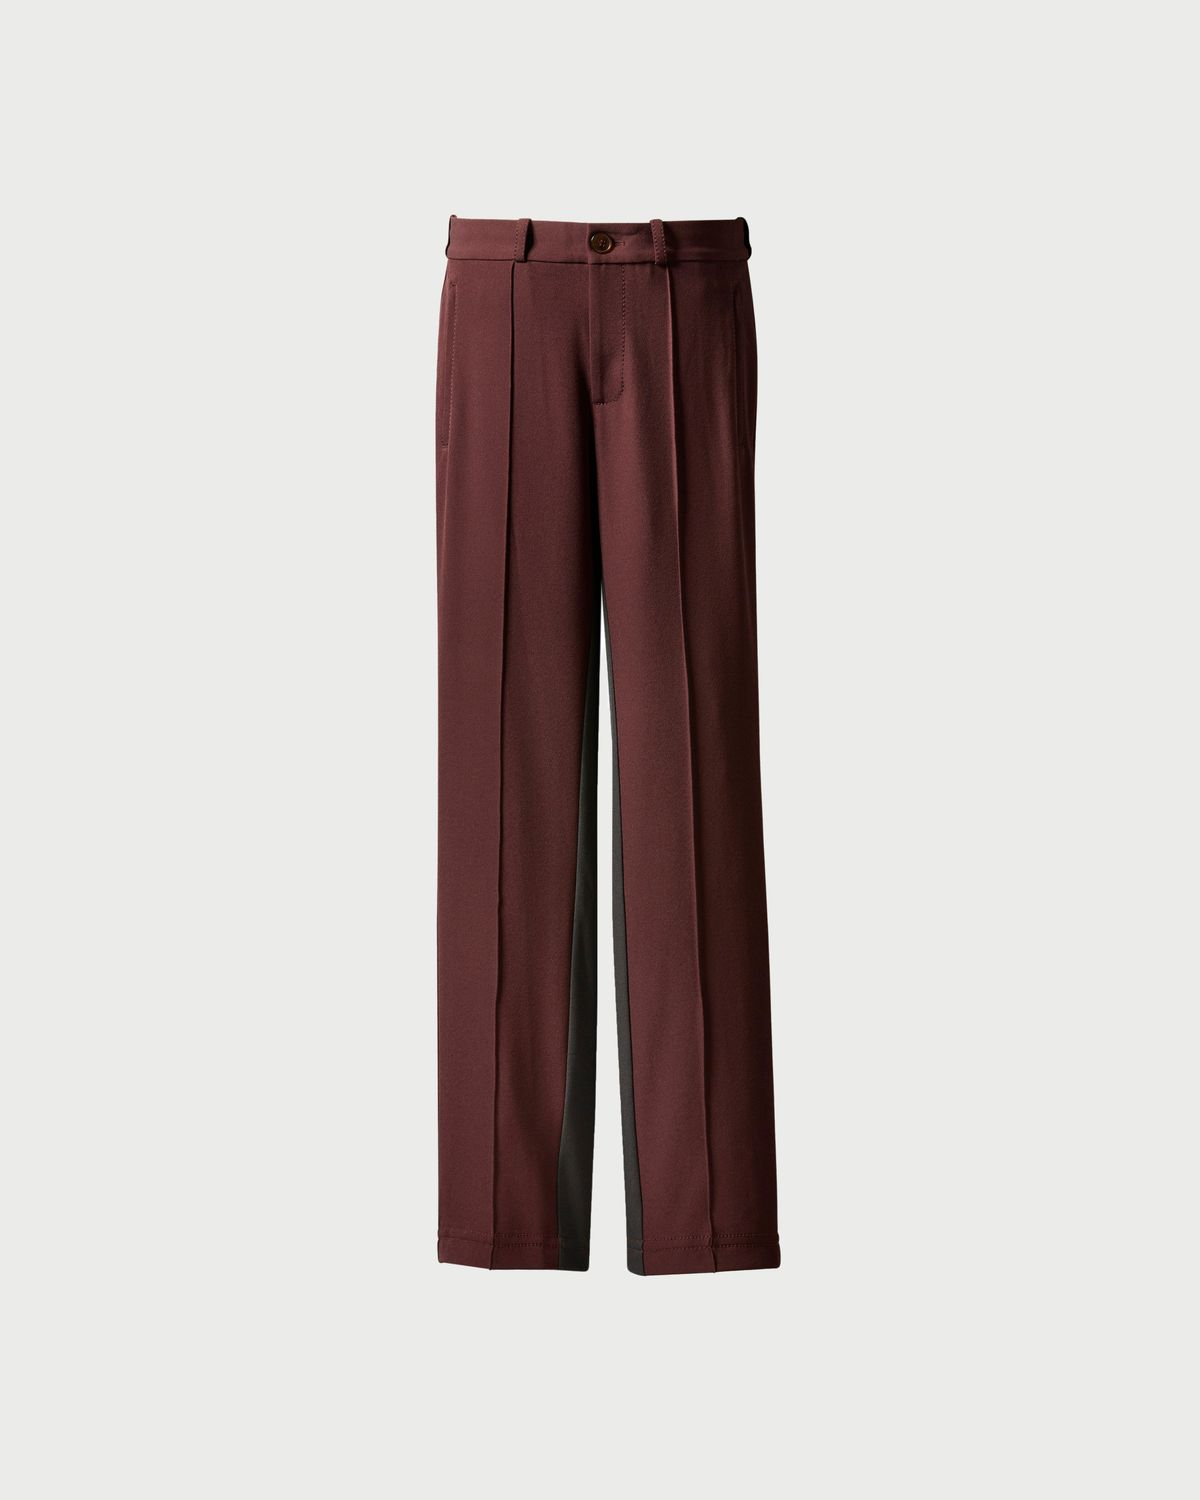 Adidas x Wales Bonner - Rock Pants Brown - Image 1